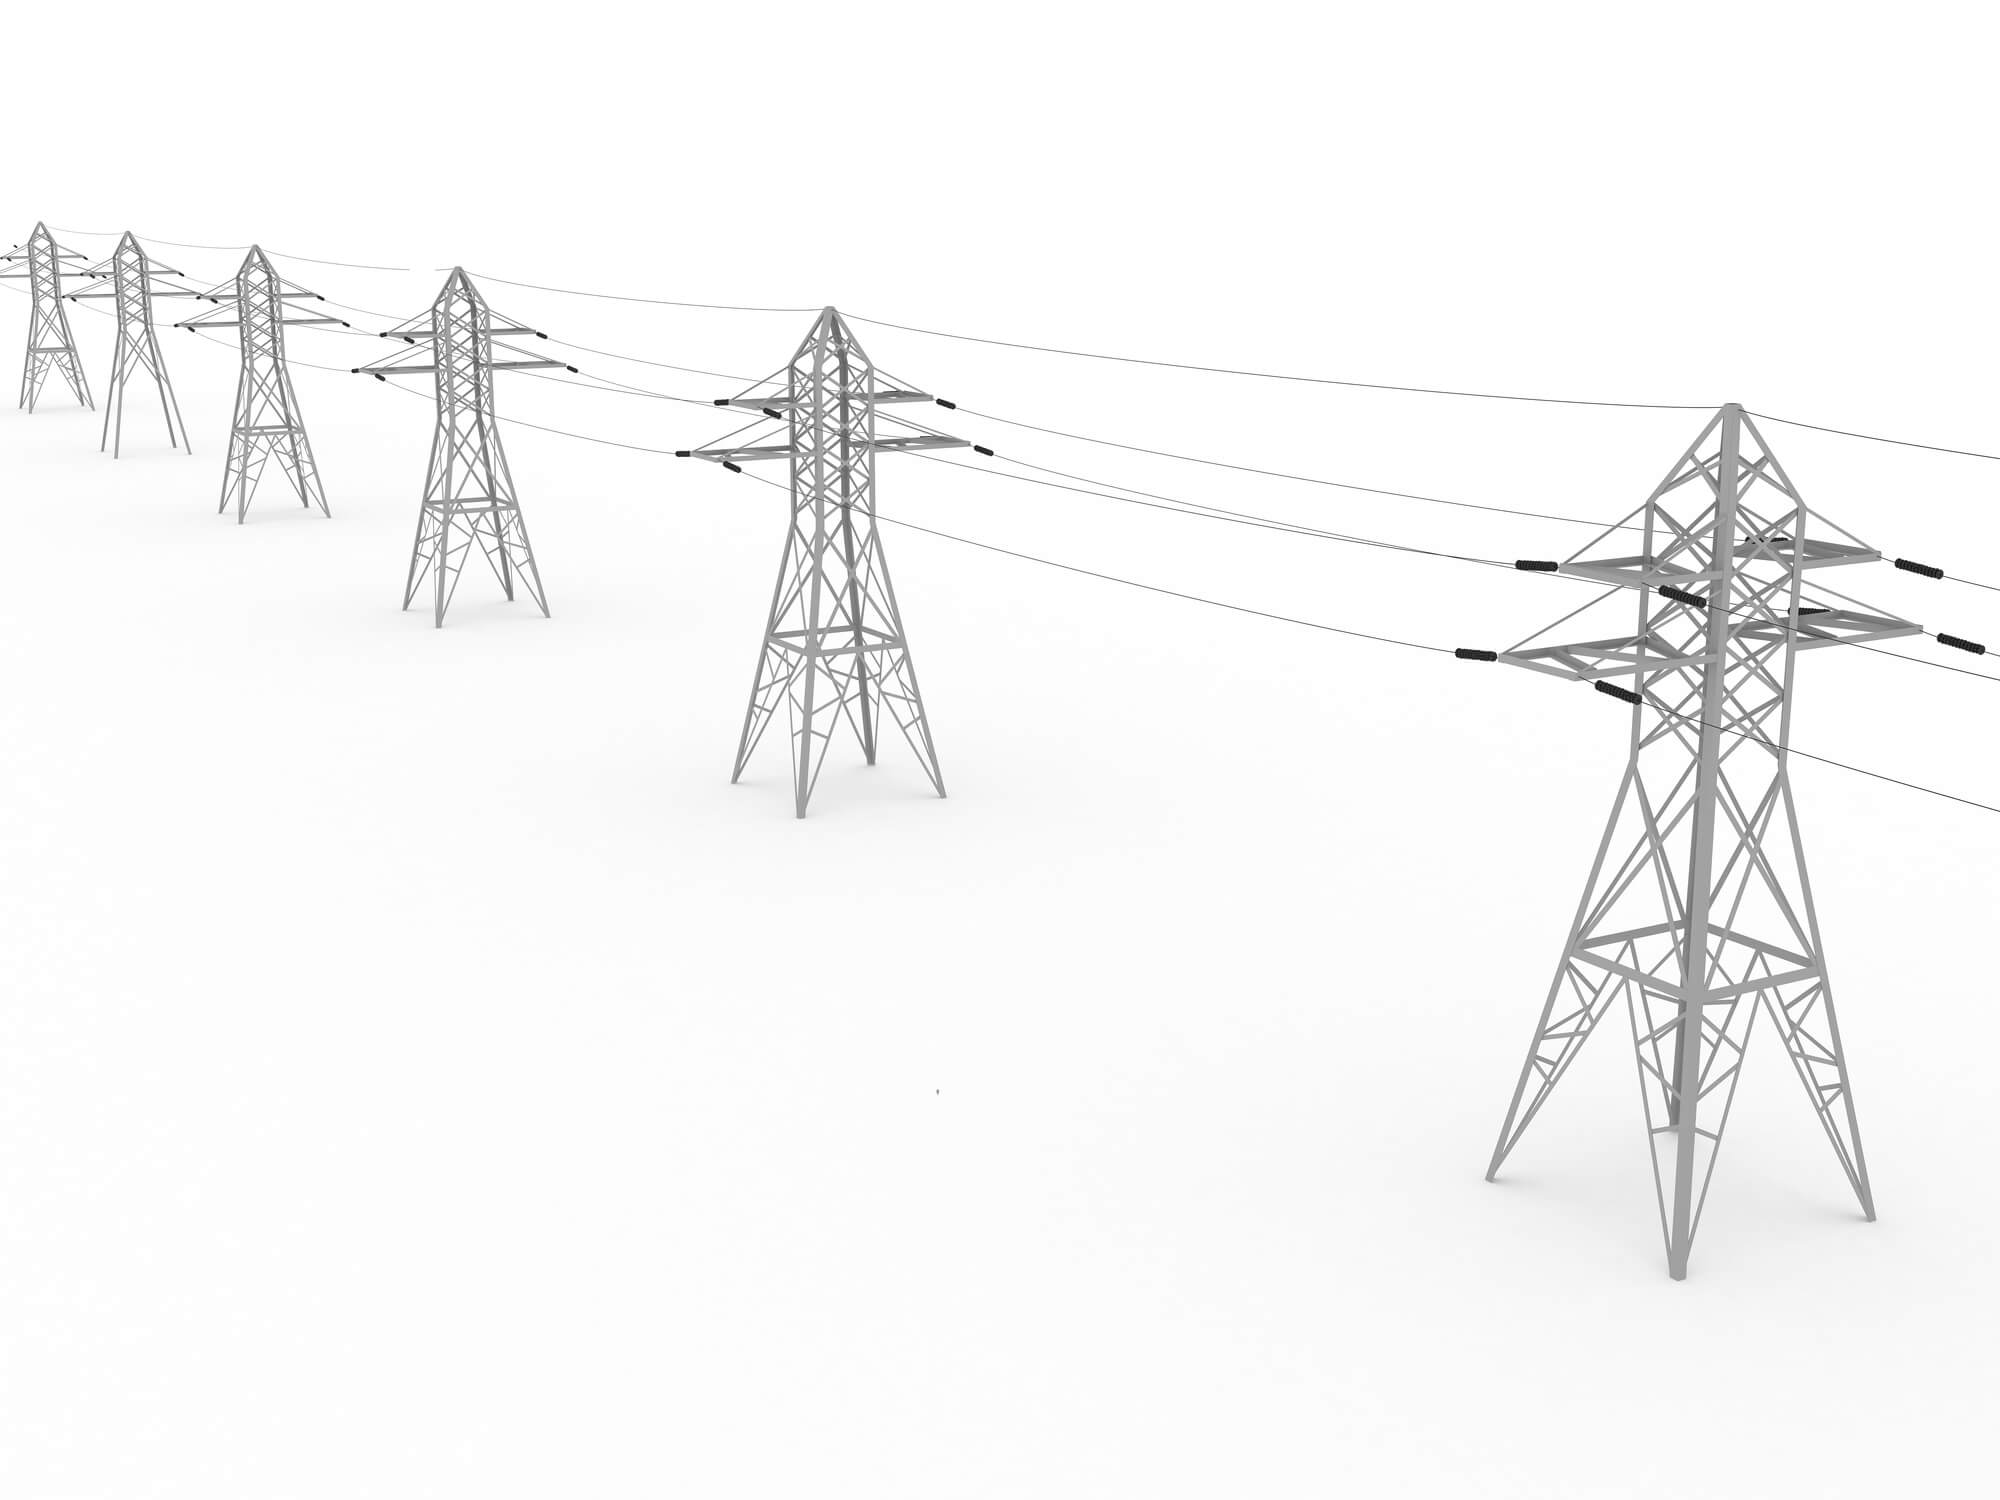 Image: Electricity Transmission Lines